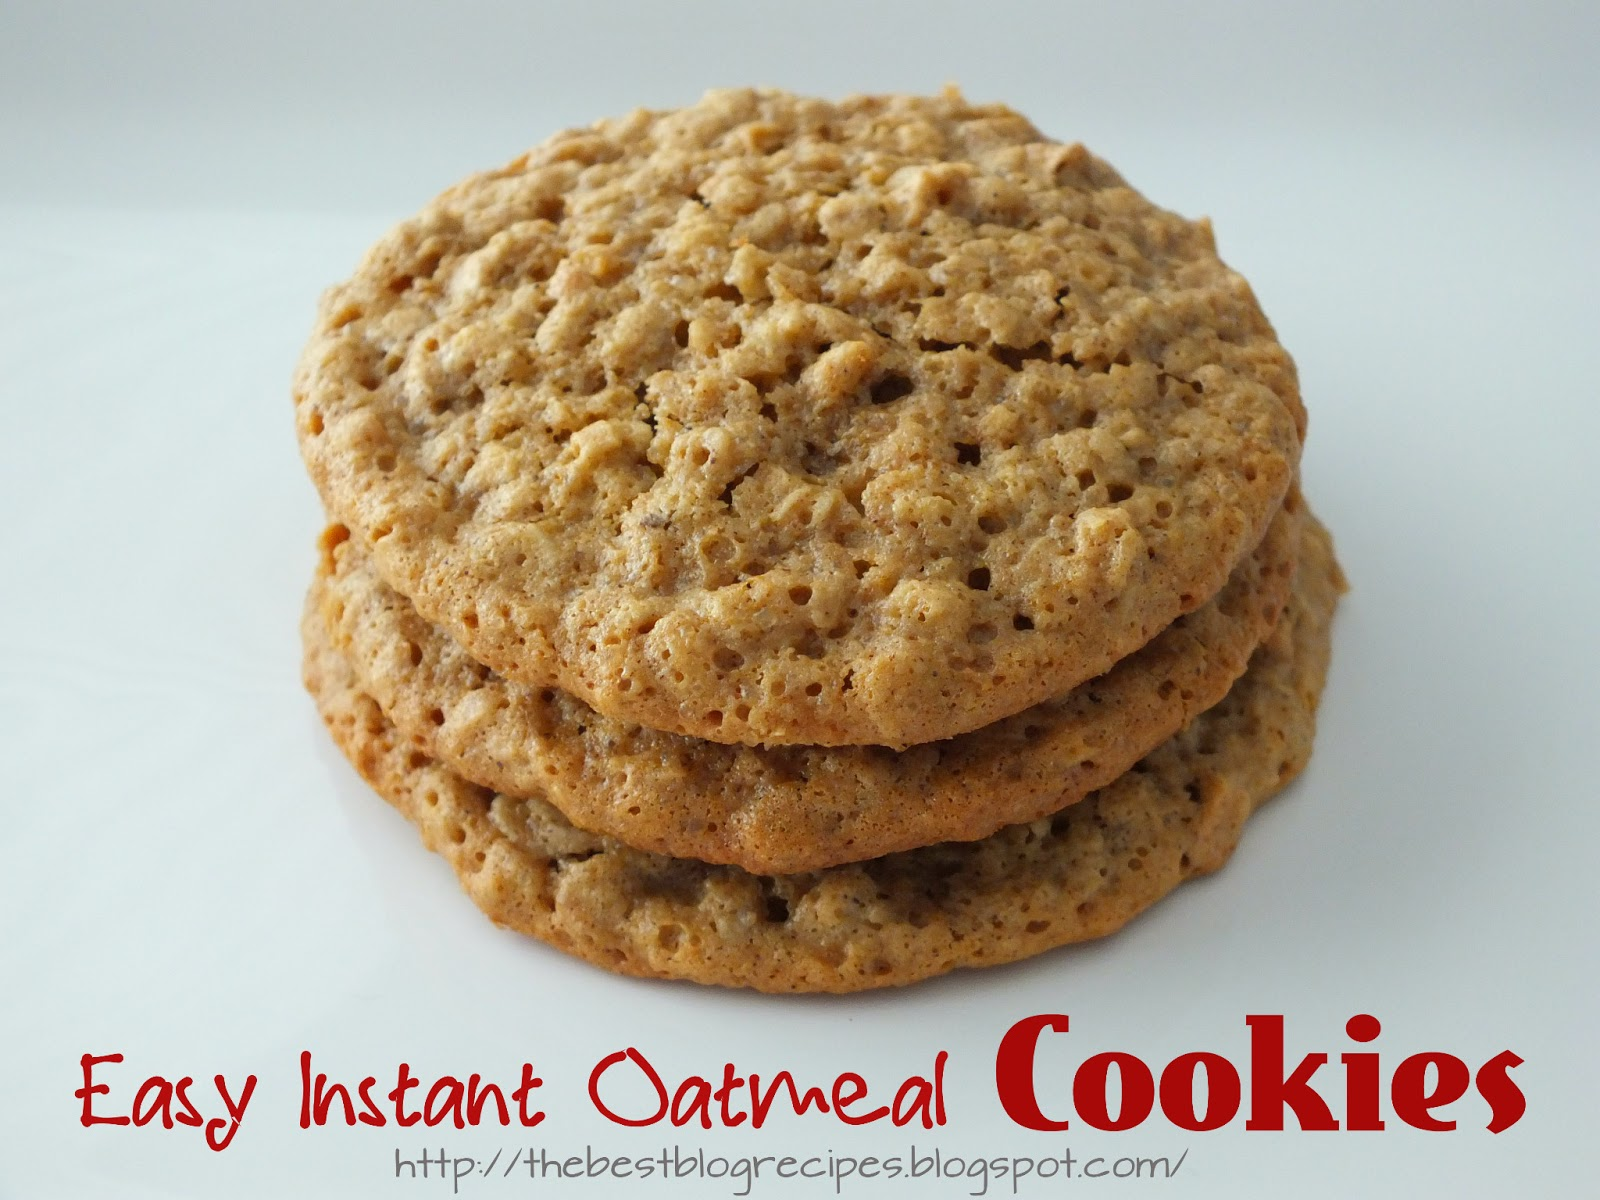 Easy Instant Oatmeal Cookies - The Best Blog Recipes